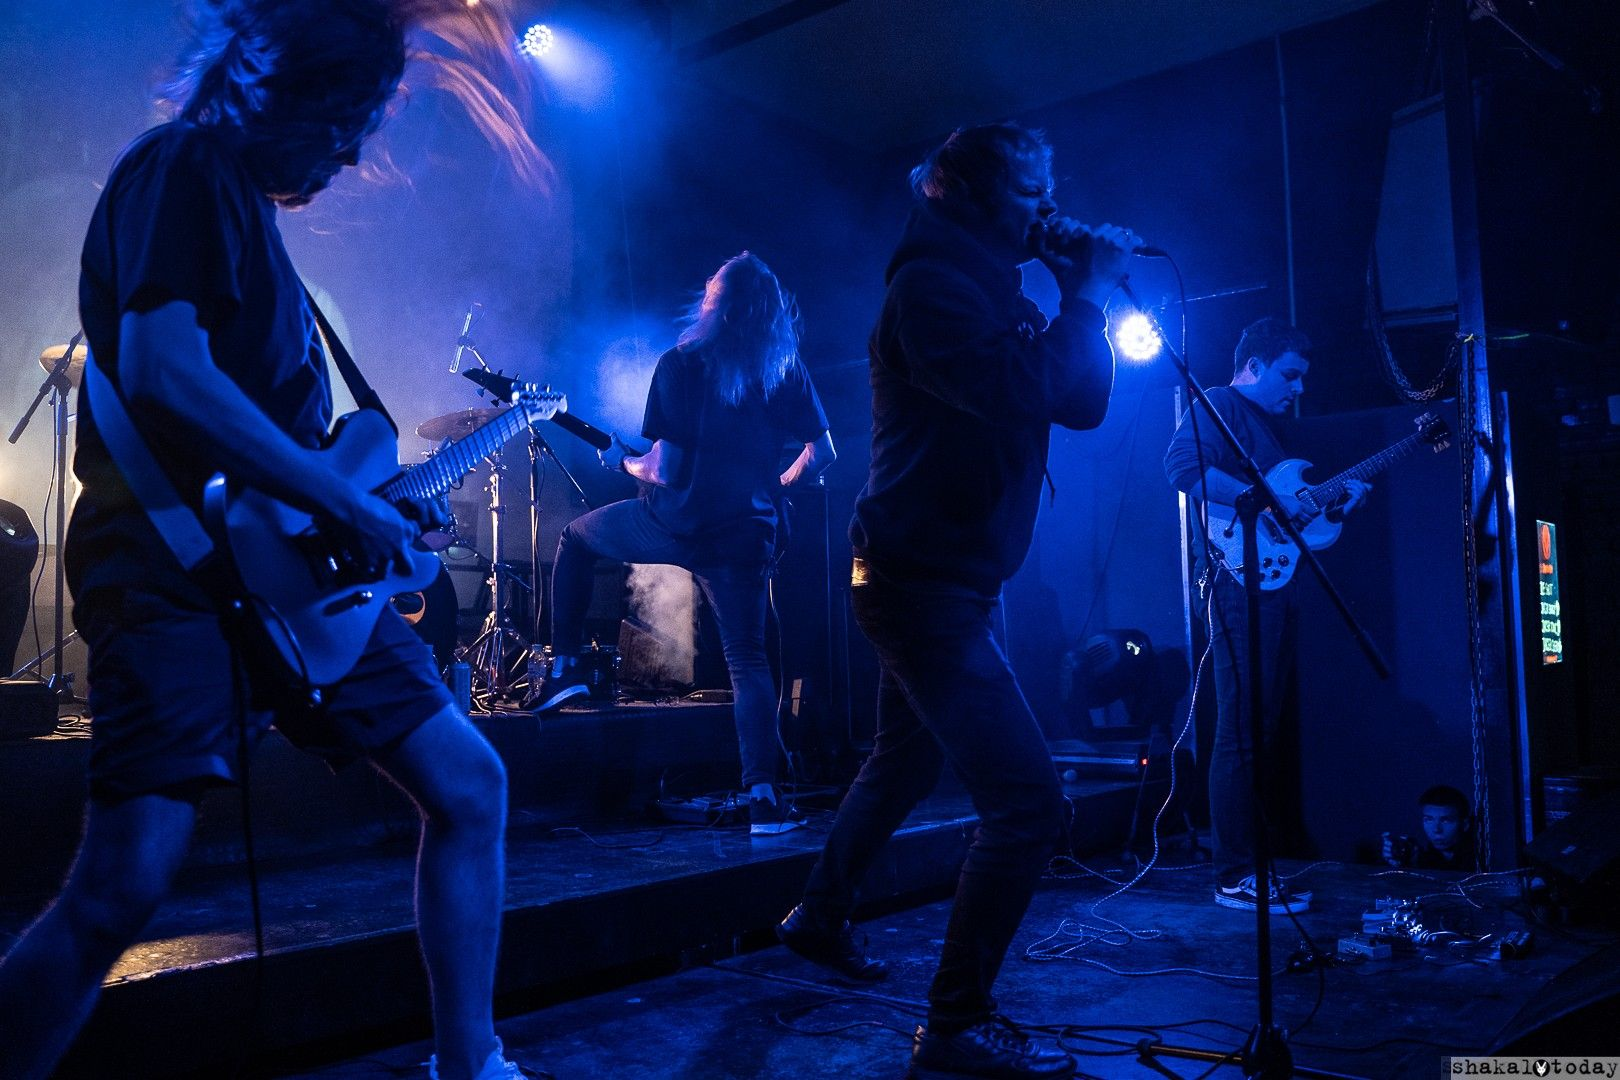 shakal-today-sludge-2018-0029.jpg